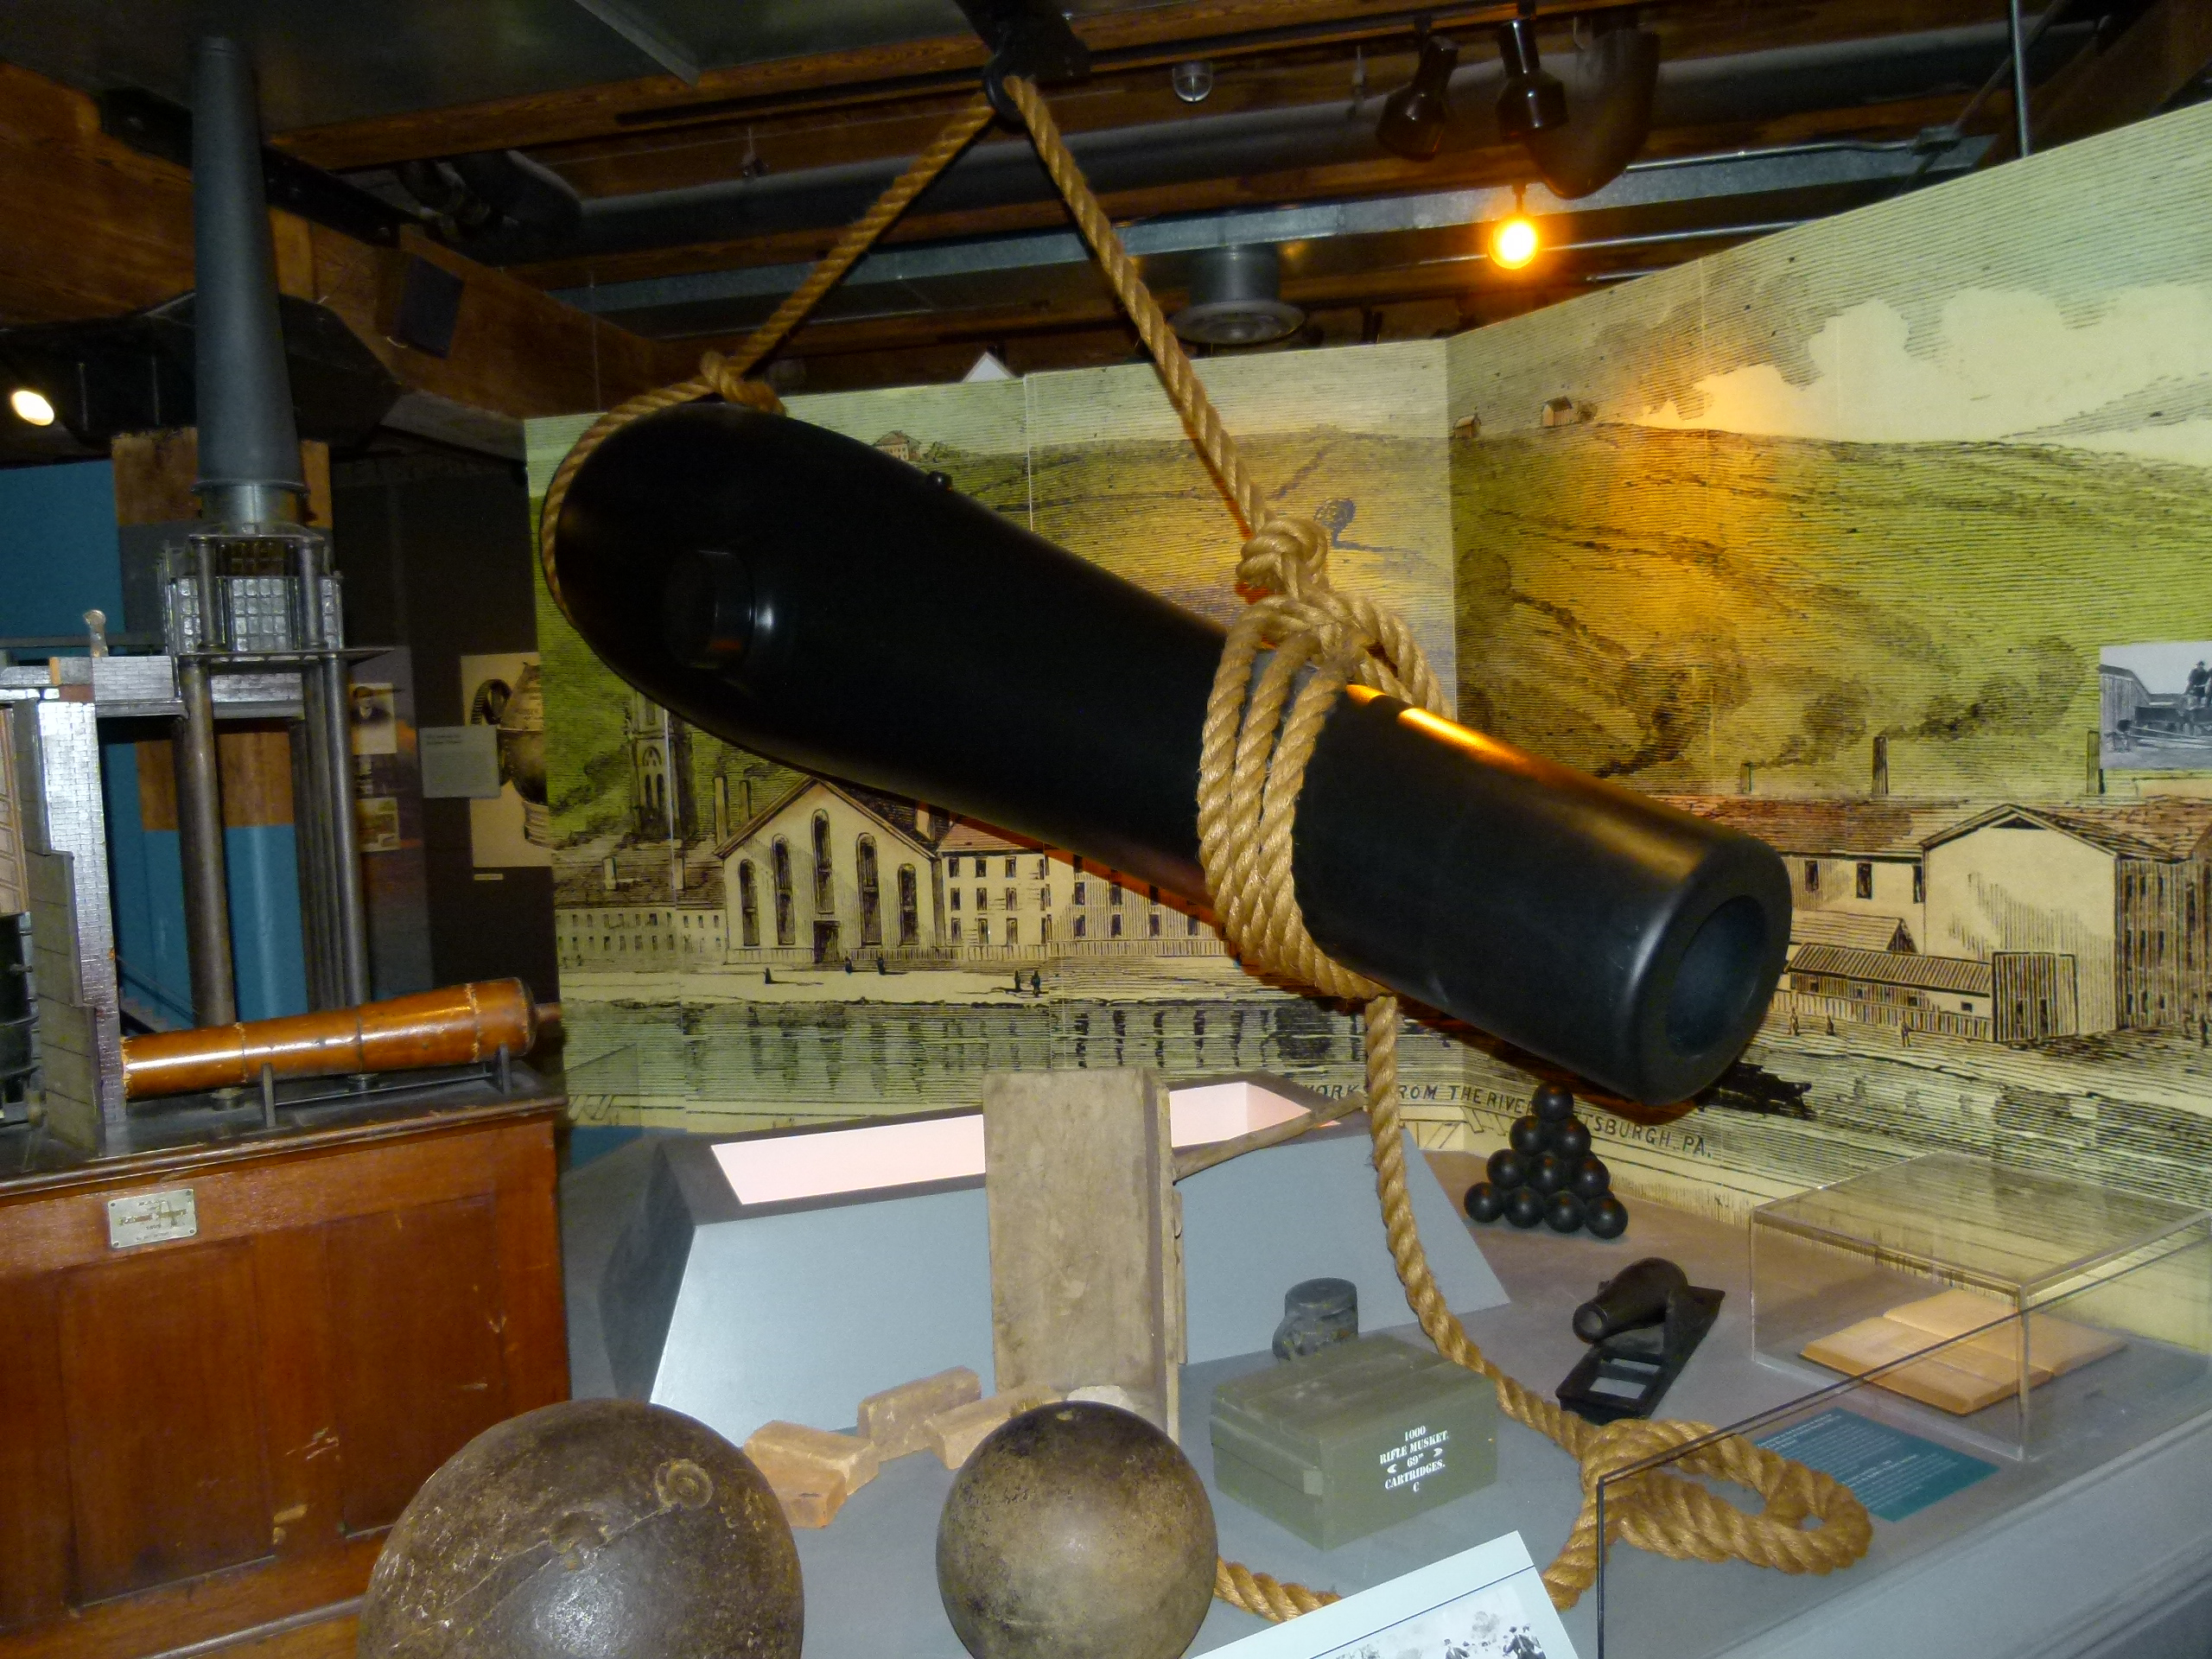 Many cannons and other military products were forged in Pittsburgh mills over the years.